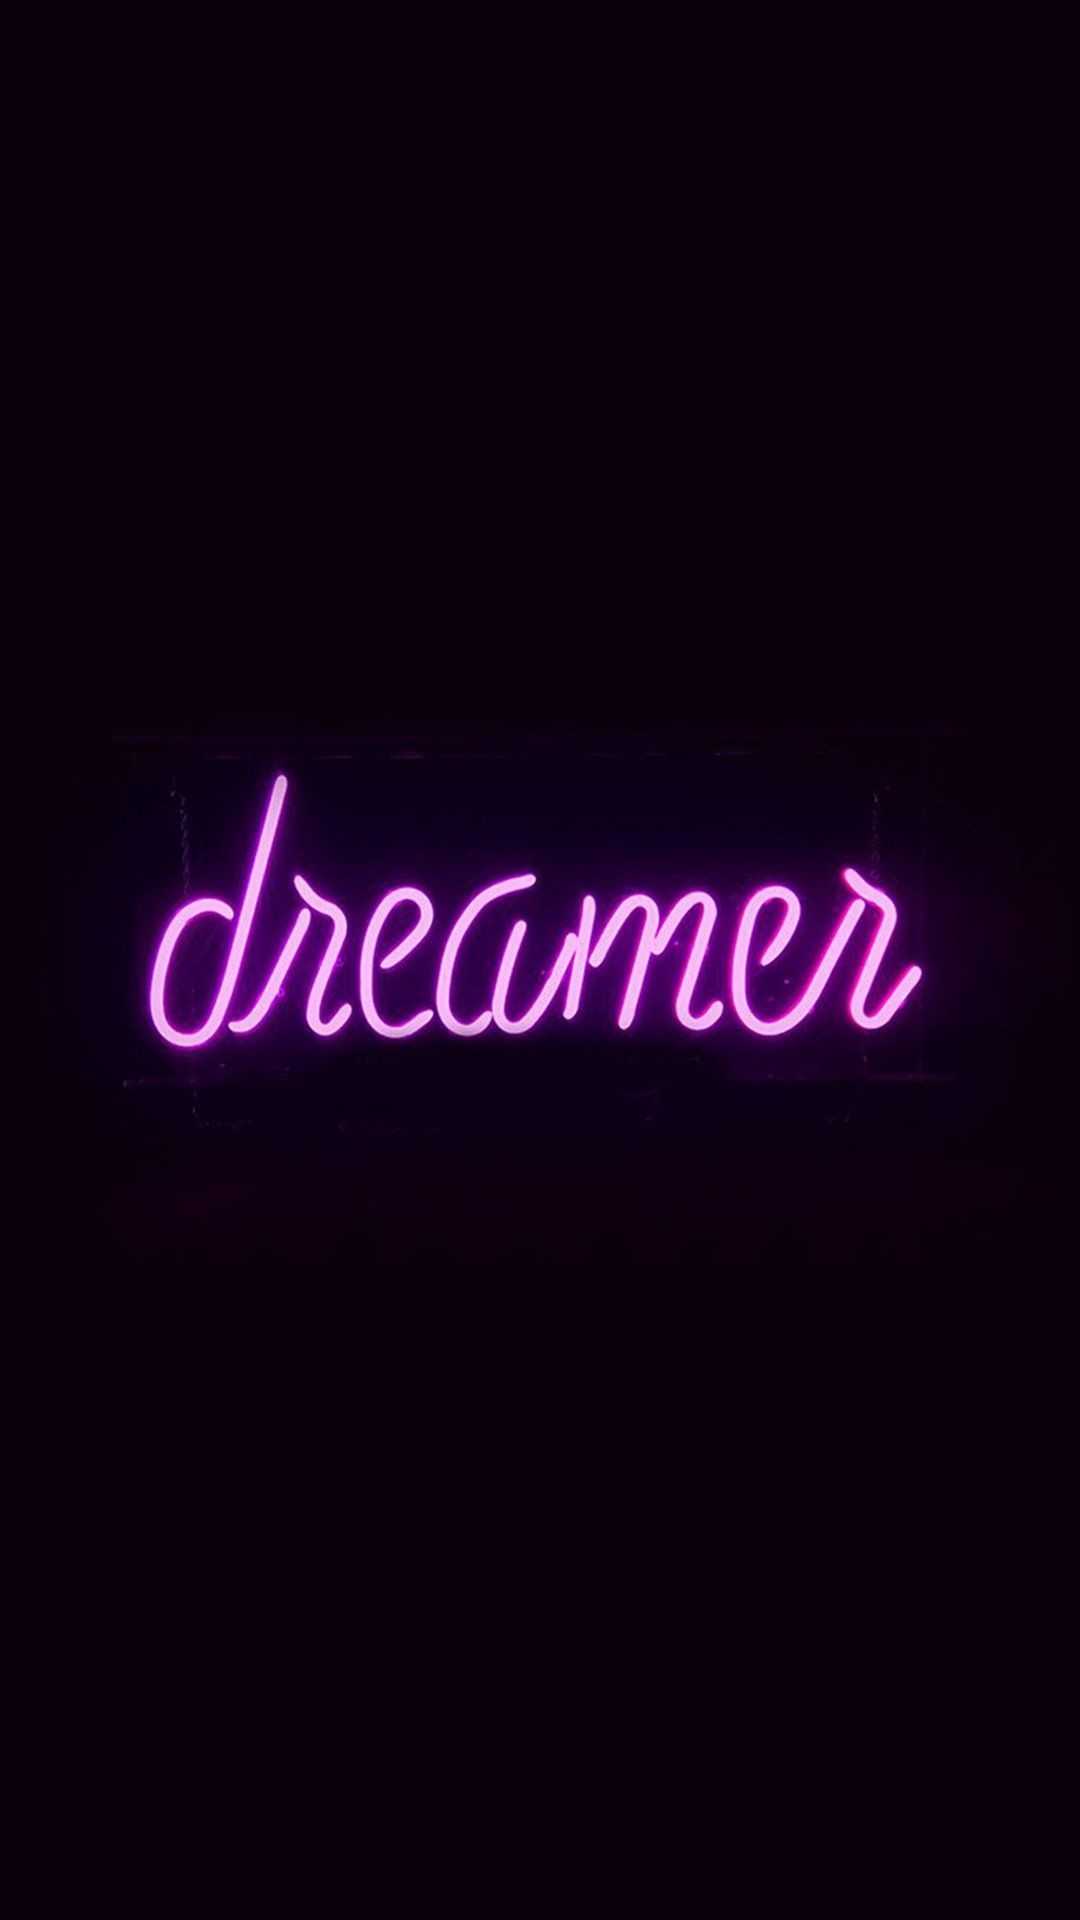 Res: 1080x1920, Dreamers Neon Sign Dark Illustration Art Purple #iPhone #6 #wallpaper